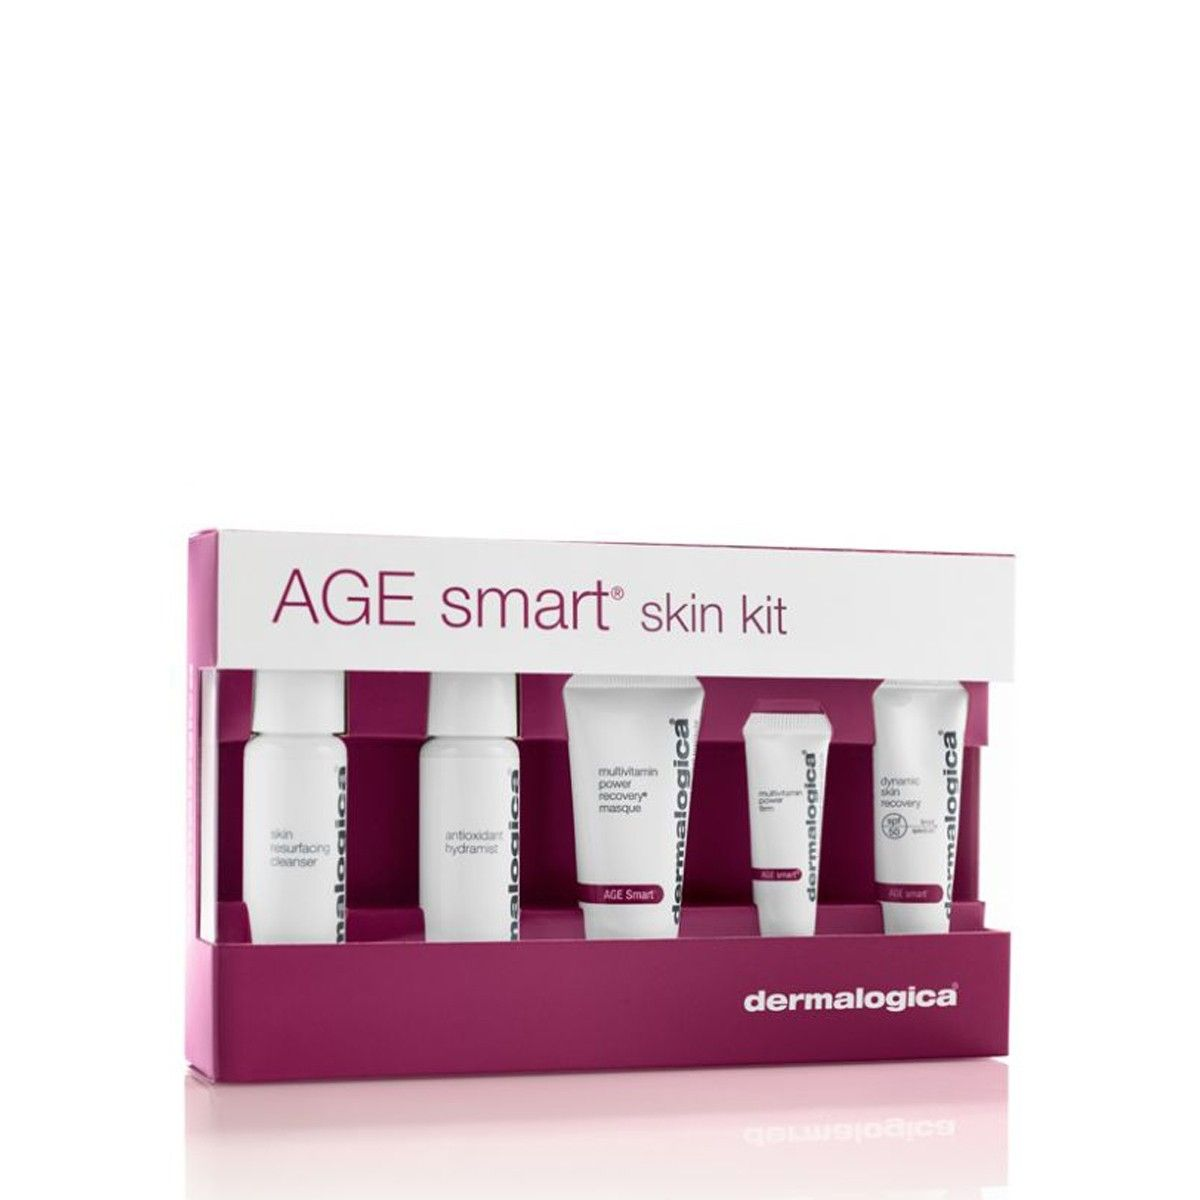 Afbeelding van Dermalogica Age Smart Starter Kit Skin Kits Sets Beauty